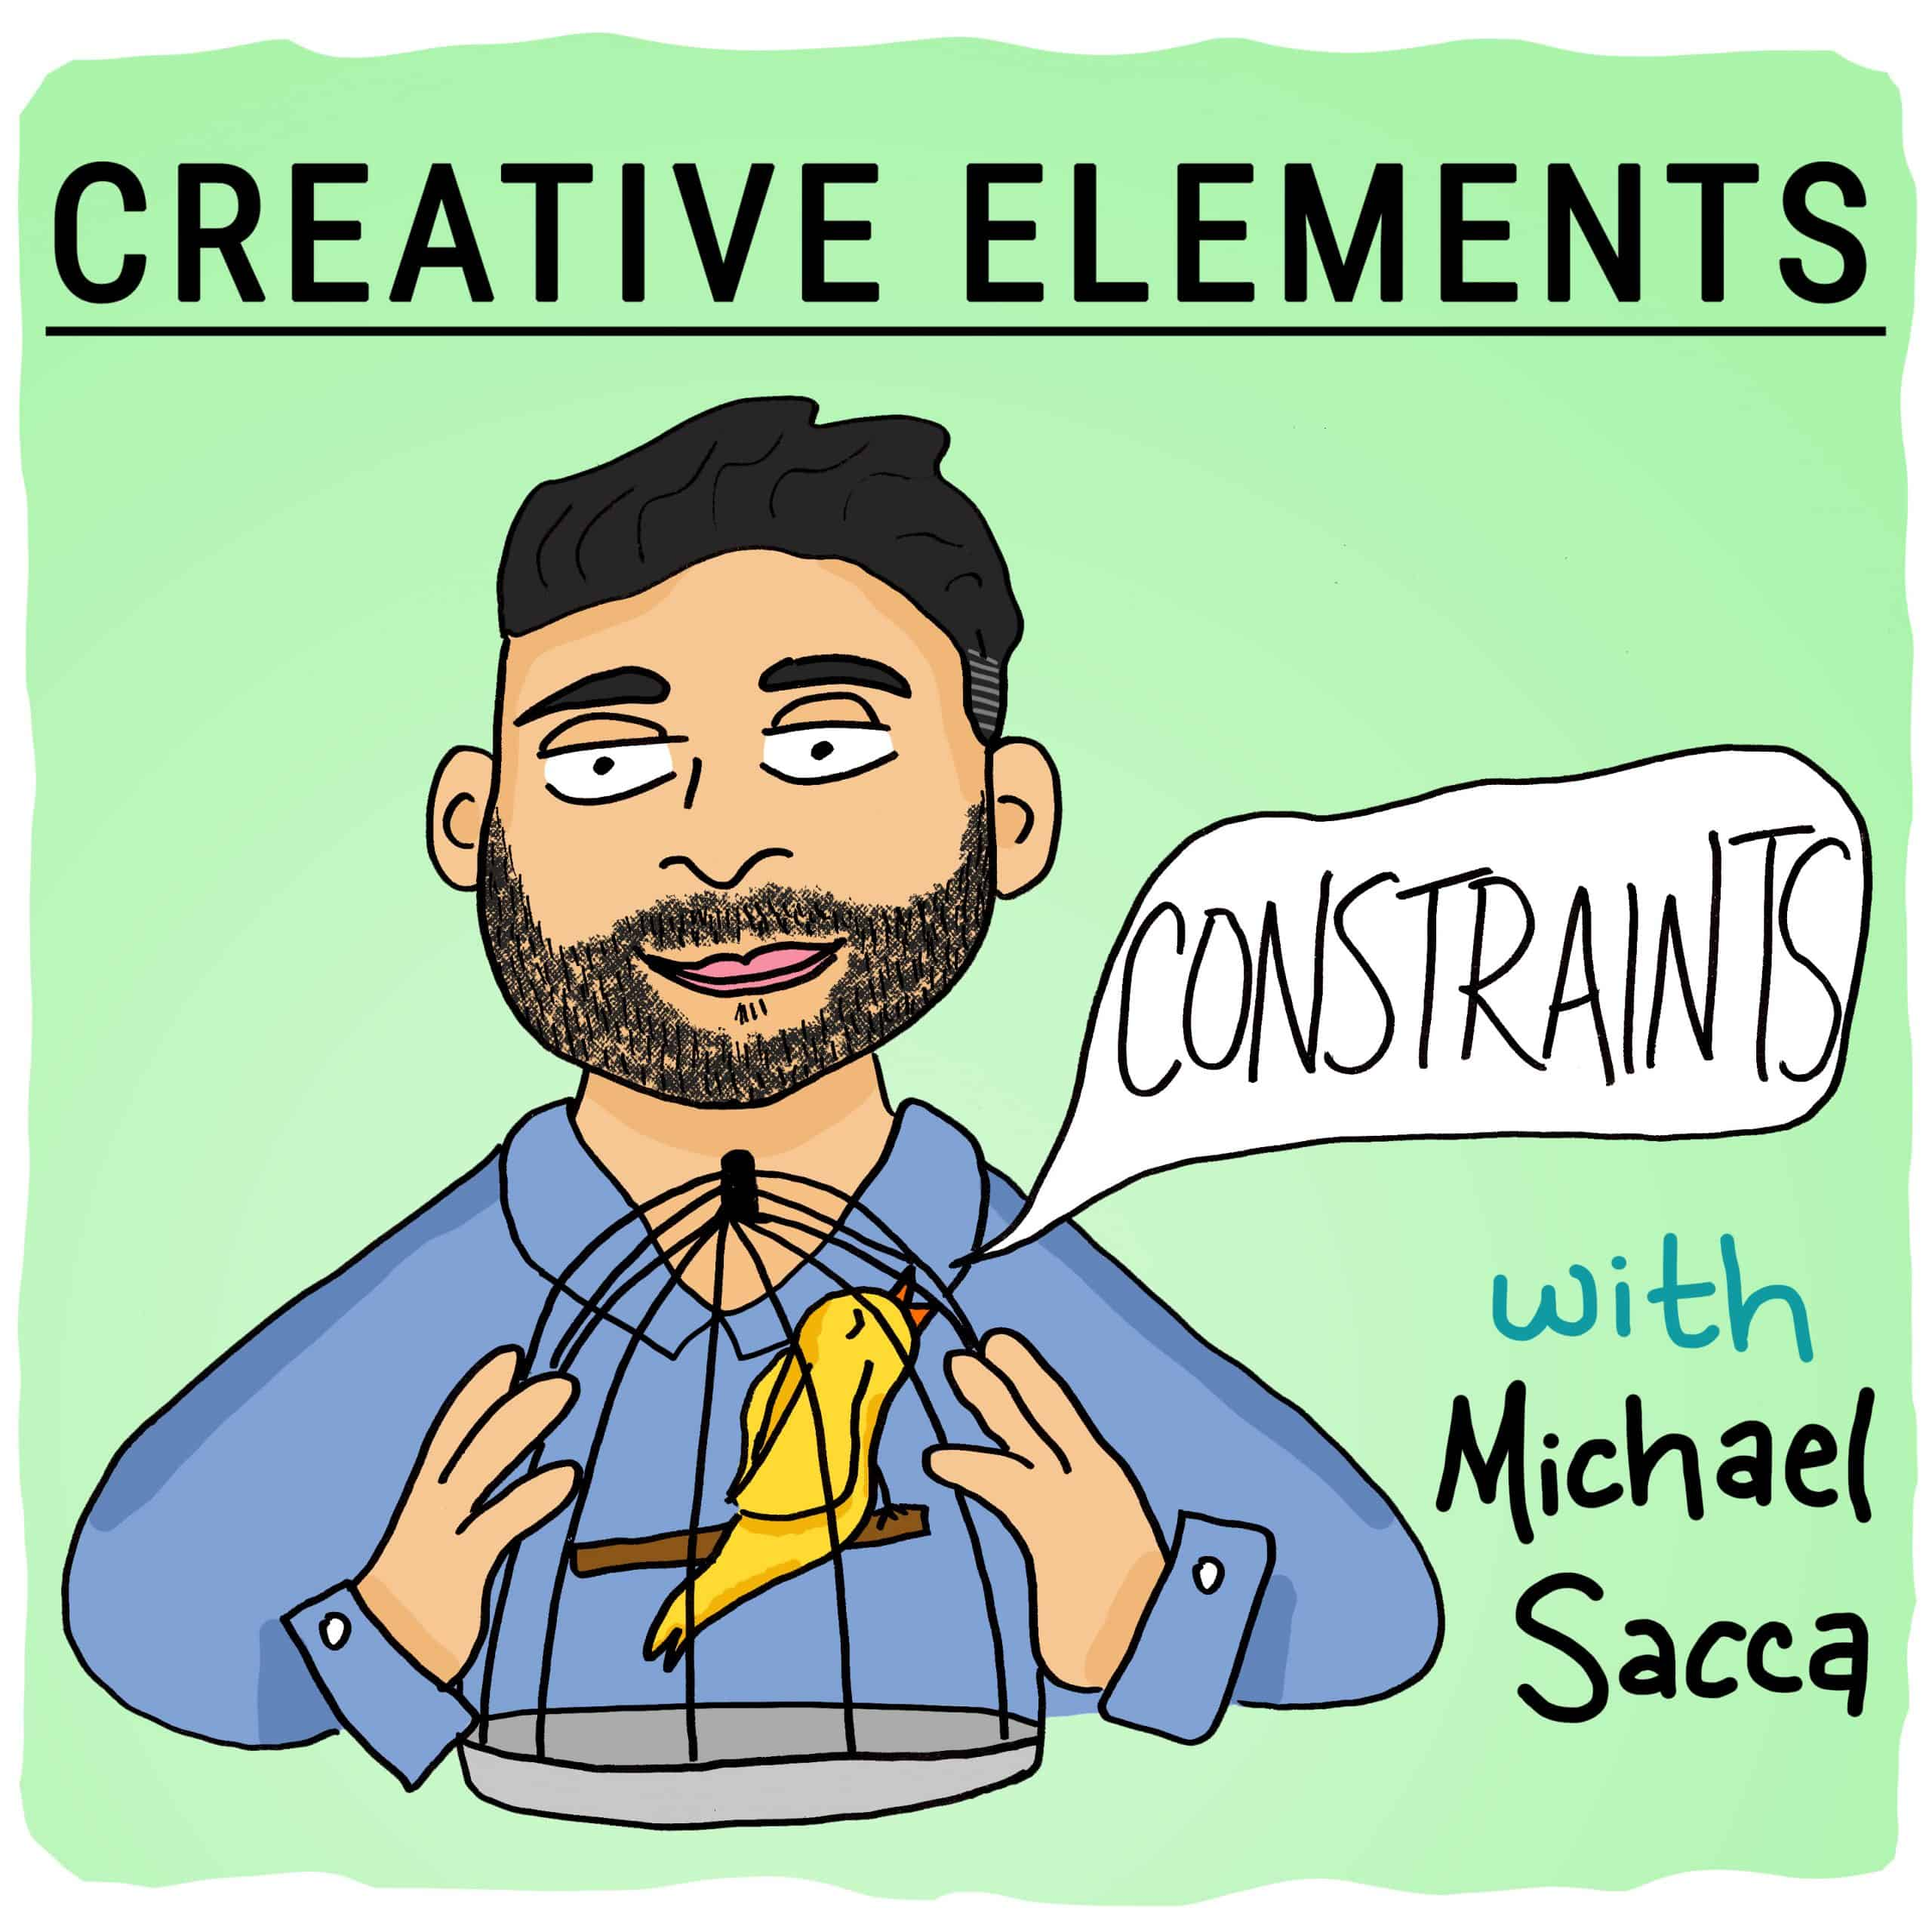 Michael Sacca on Creative Elements